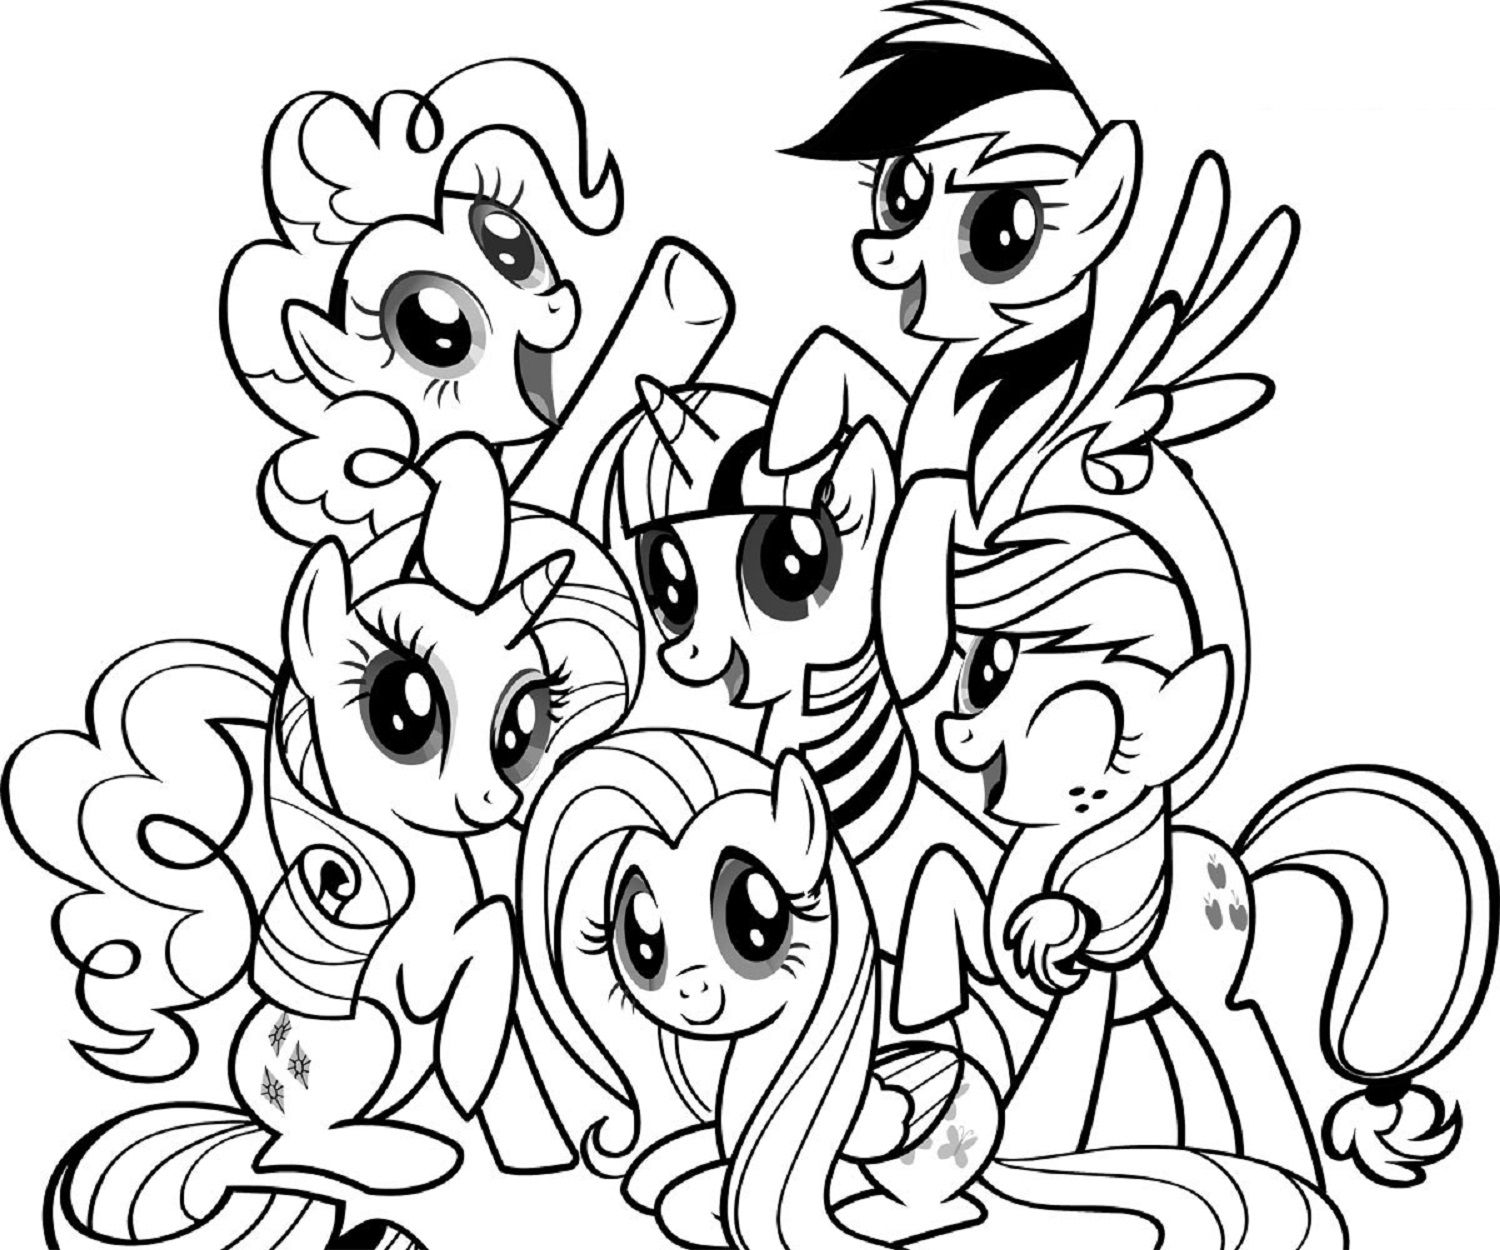 Printable coloring pages about friendship - My Little Pony Coloring Pages With Friends